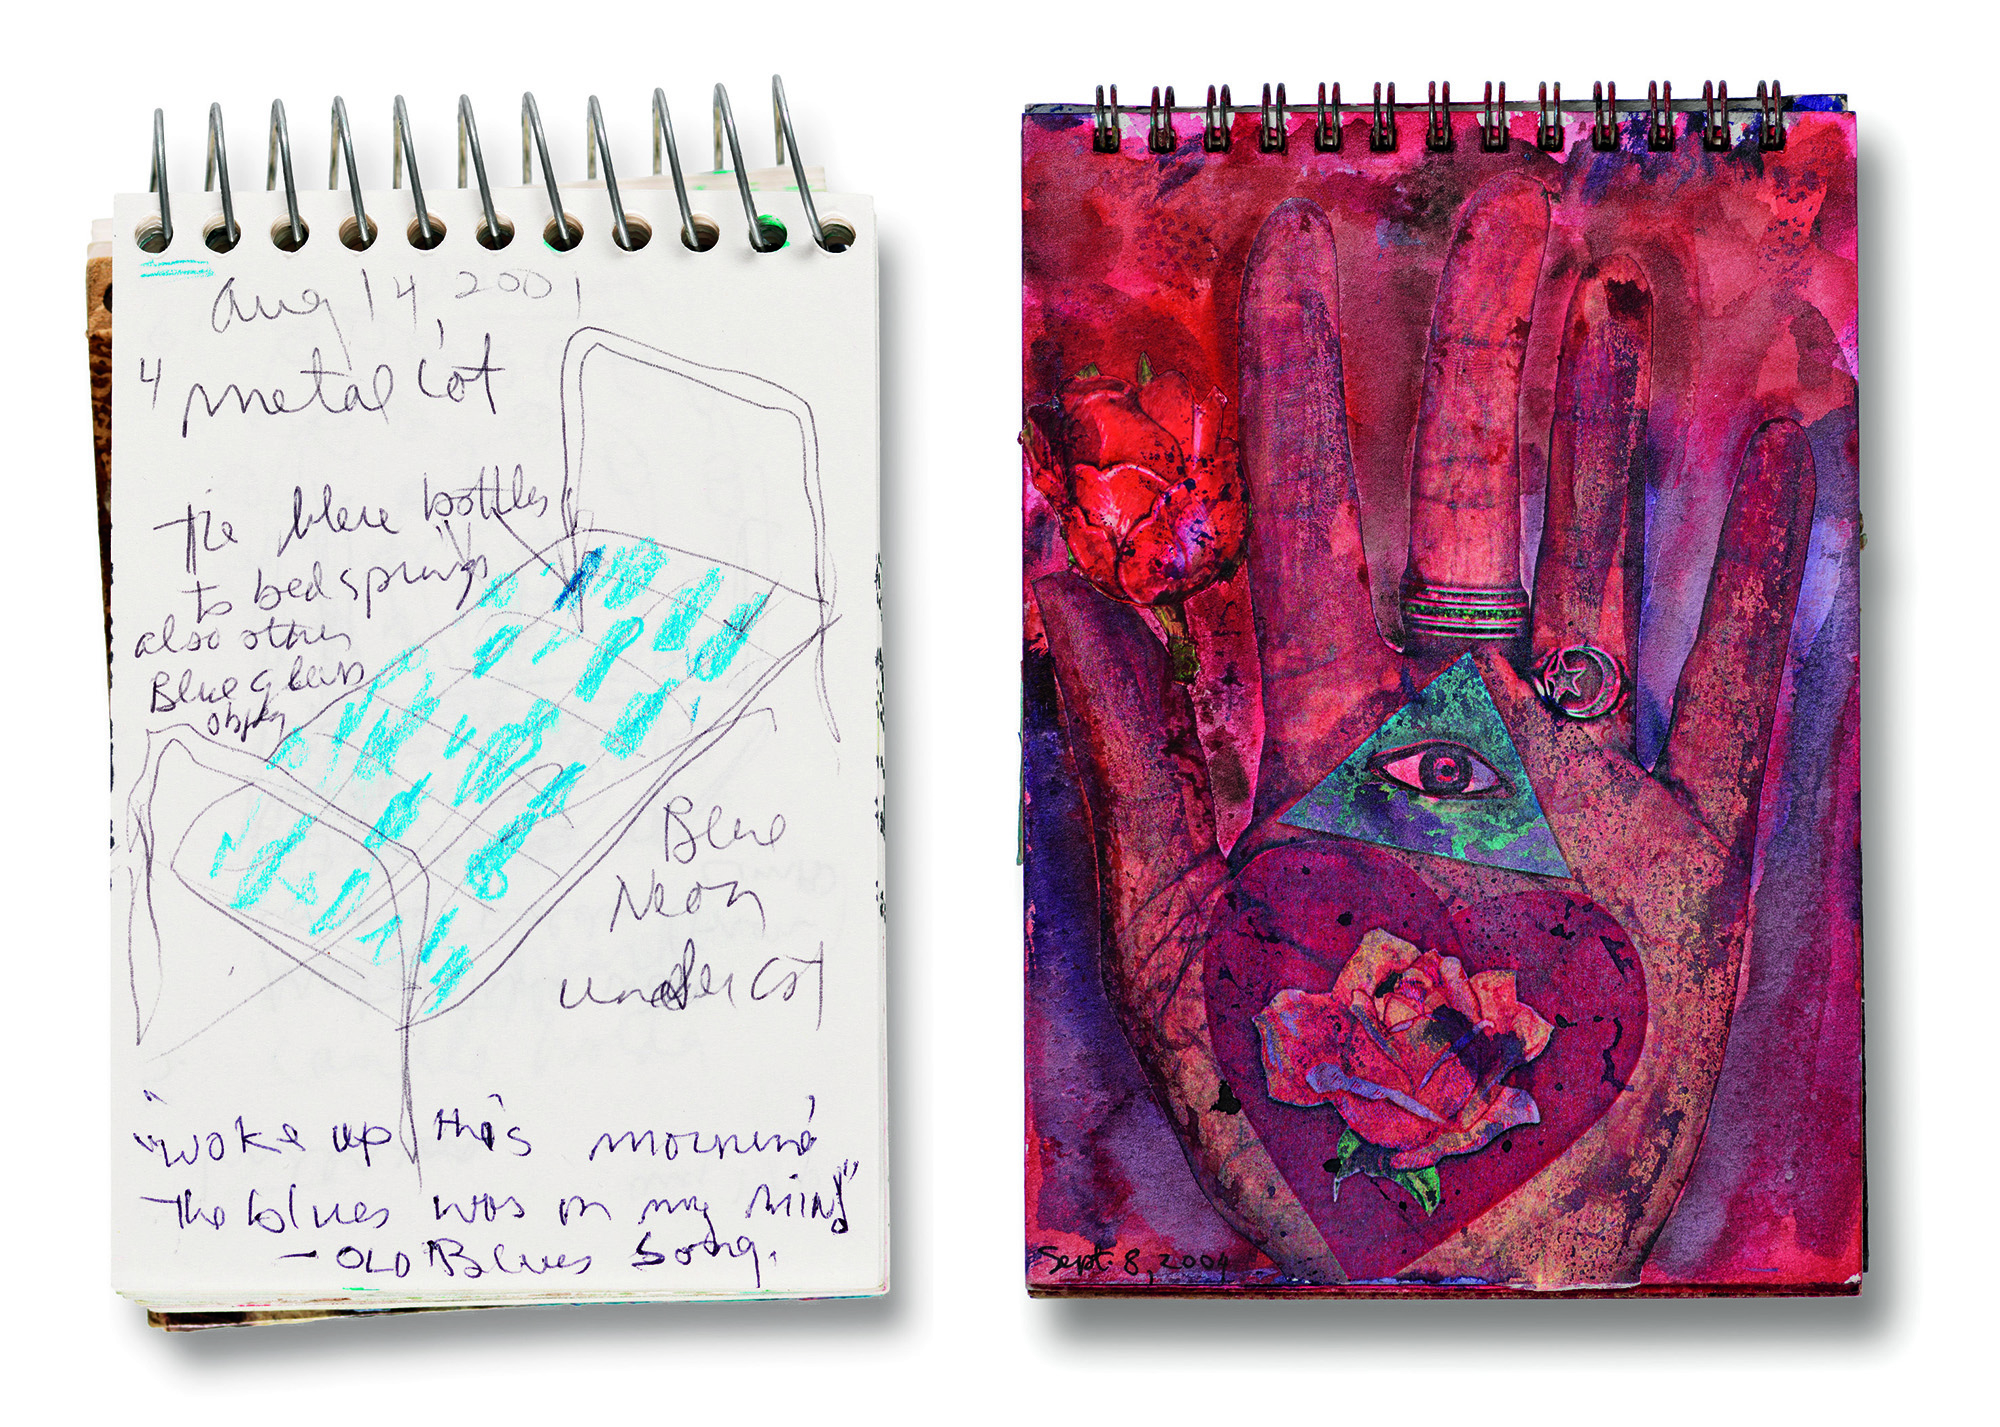 Left: Betye Saar, Page from 2000–2001 Sketchbook, August 14, 2001; Right: Betye Saar, Page from Aix-en-Provence/Los Angeles Sketchbook, September 8, 2004; both works Collection of Betye Saar, courtesy of the artist and Roberts Projects, Los Angeles, California, © Betye Saar, photo © Museum Associates/LACMA